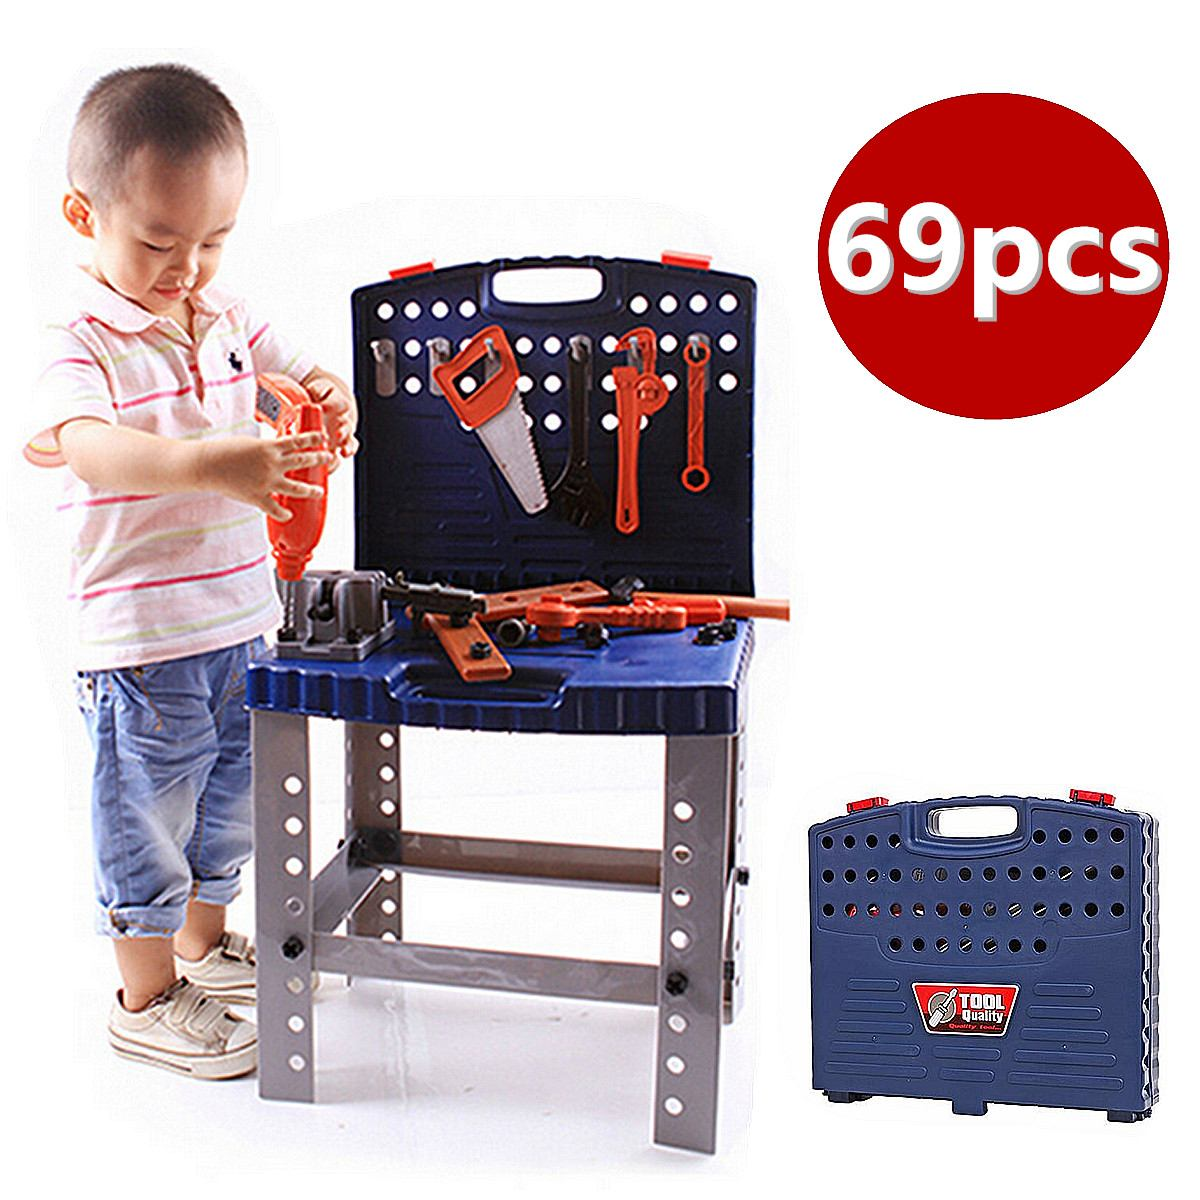 69Pcs Childrens Tool Box Foldable Work Bench With Simulation Repair Tools Set Kids Baby Role Play Toy  Mutifunctional Hand Tool69Pcs Childrens Tool Box Foldable Work Bench With Simulation Repair Tools Set Kids Baby Role Play Toy  Mutifunctional Hand Tool